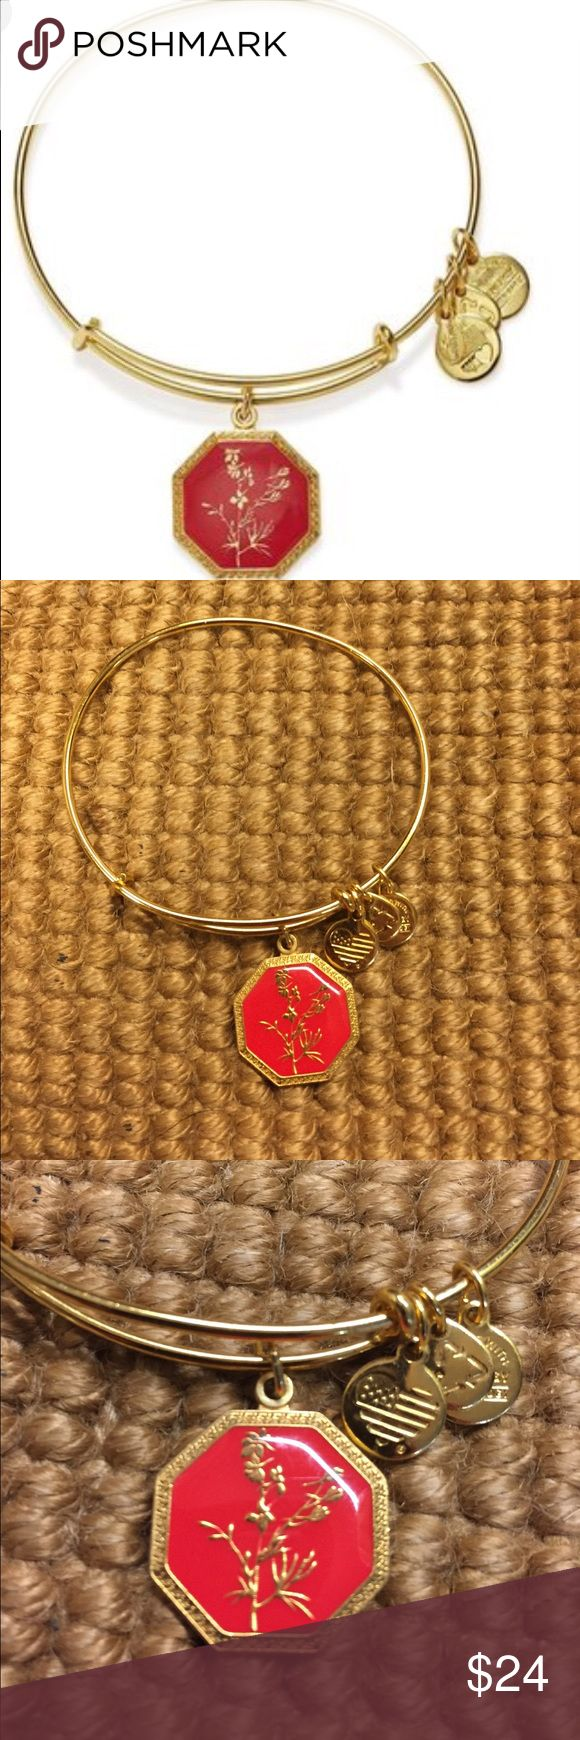 Alex & Ani Neptunes protection larkspur bracelet. Alex & Ani goldtone larkspur bracelet. New never worn. No tags or box but in perfect condition. Extremely interesting Alex & Ani. Alex & Ani Jewelry Bracelets